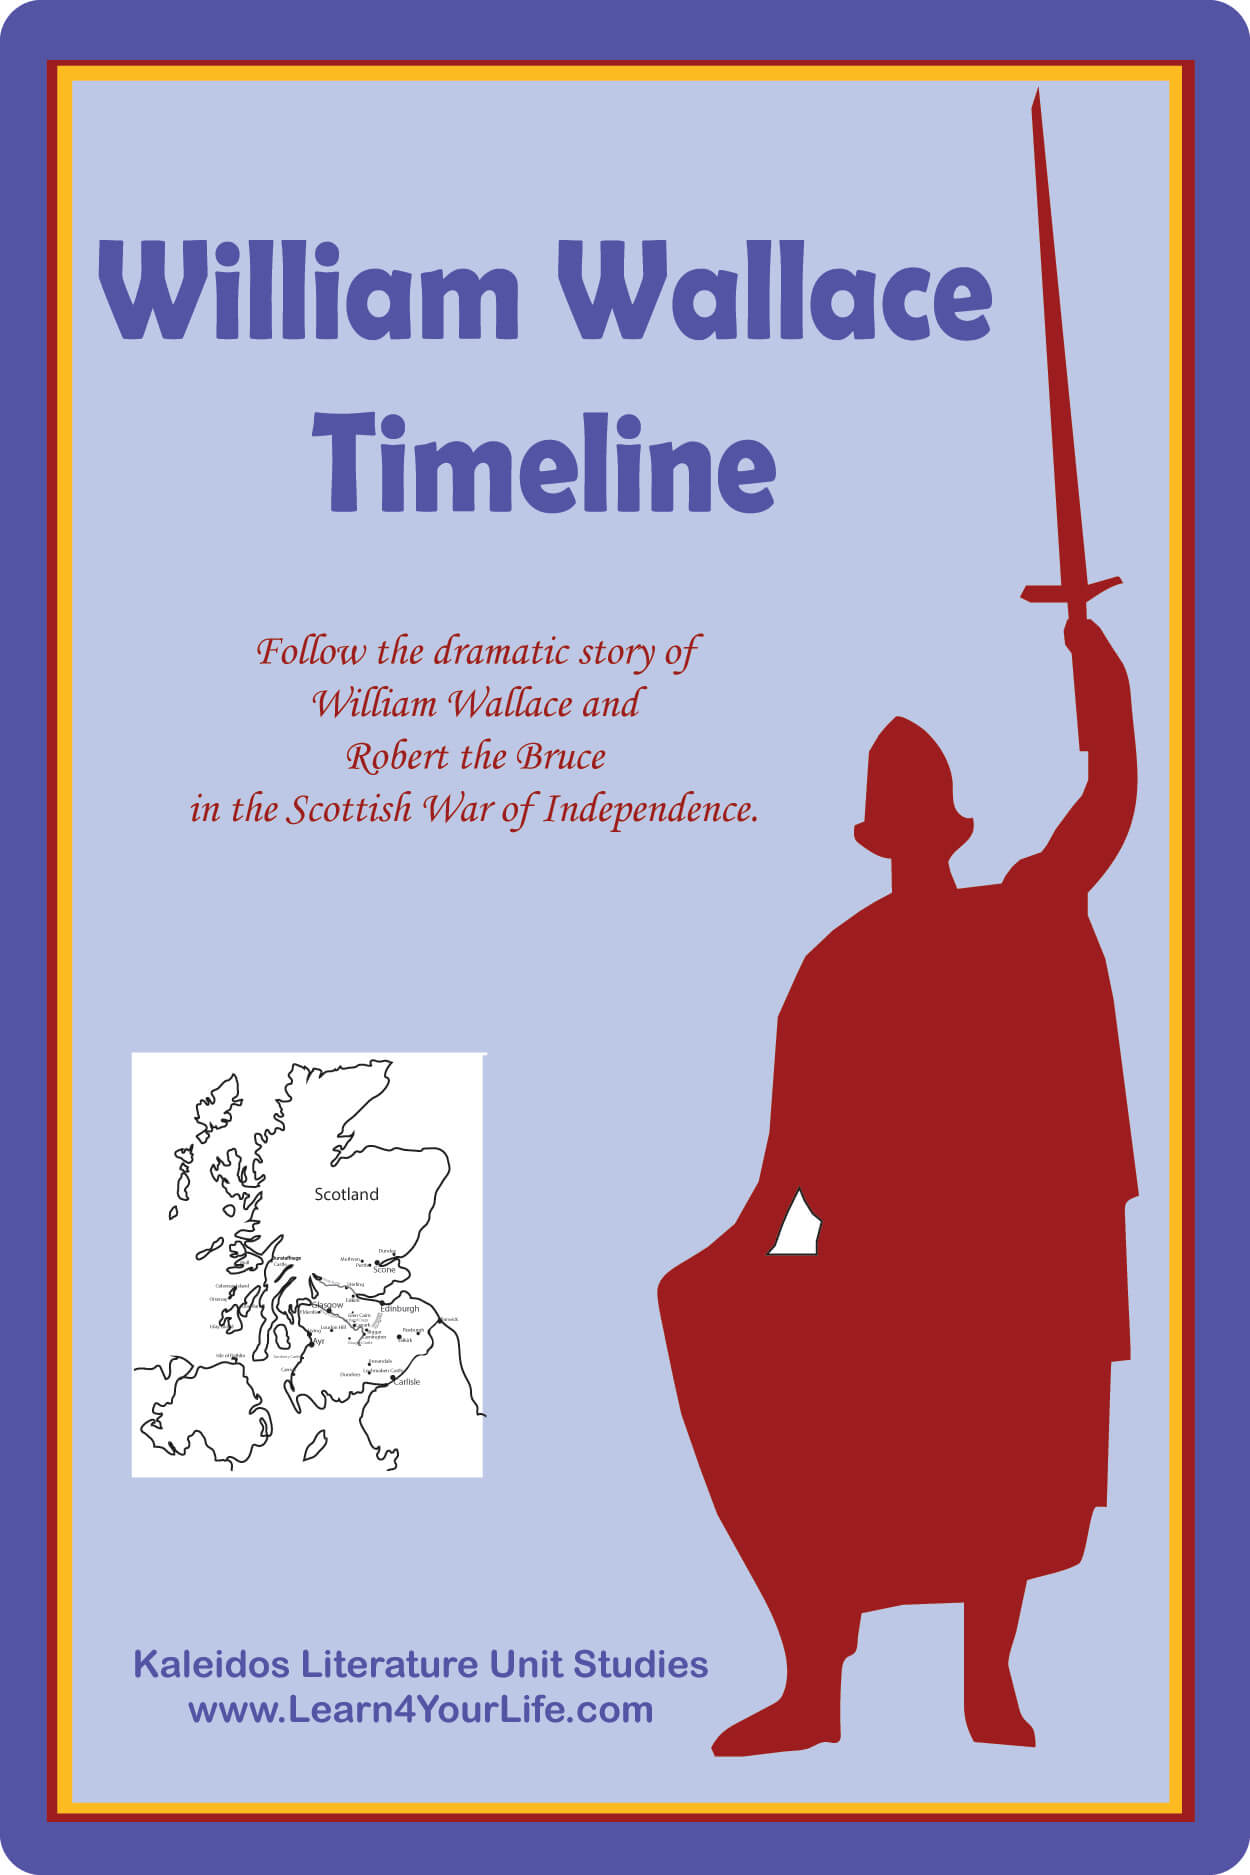 William Walllace and Robert Bruce Timeline